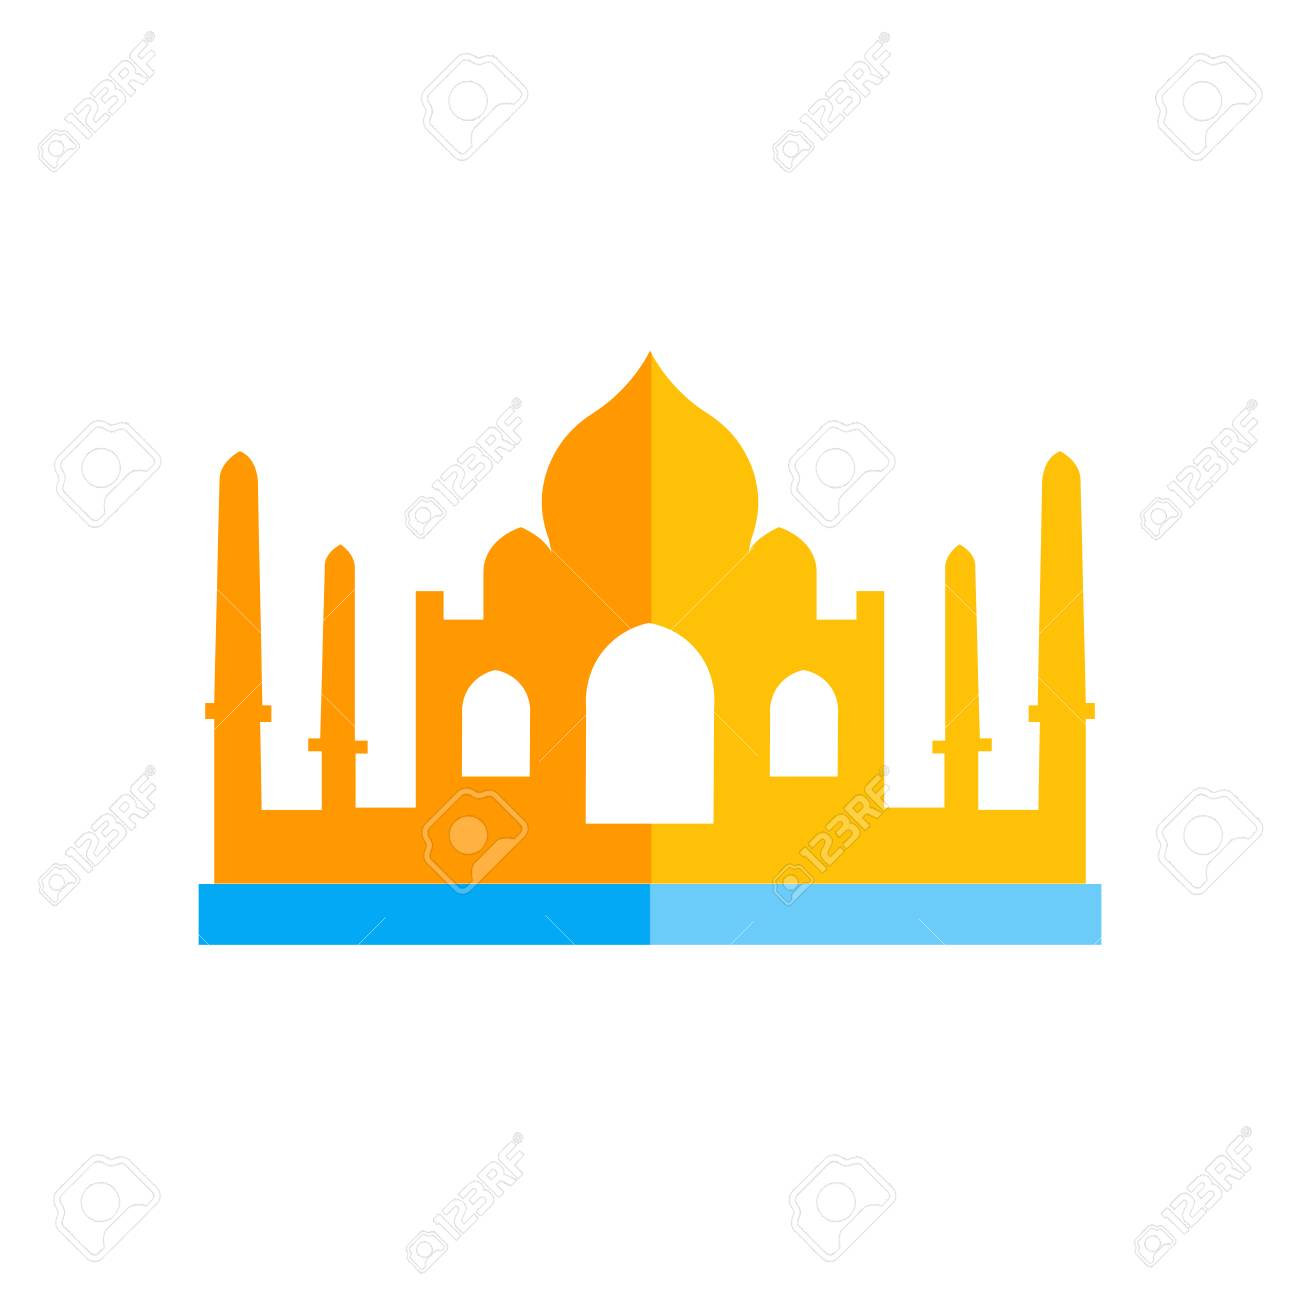 Taj mahal icon vector isolated on white background for your web and mobile app design, Taj mahal logo concept - 107024850